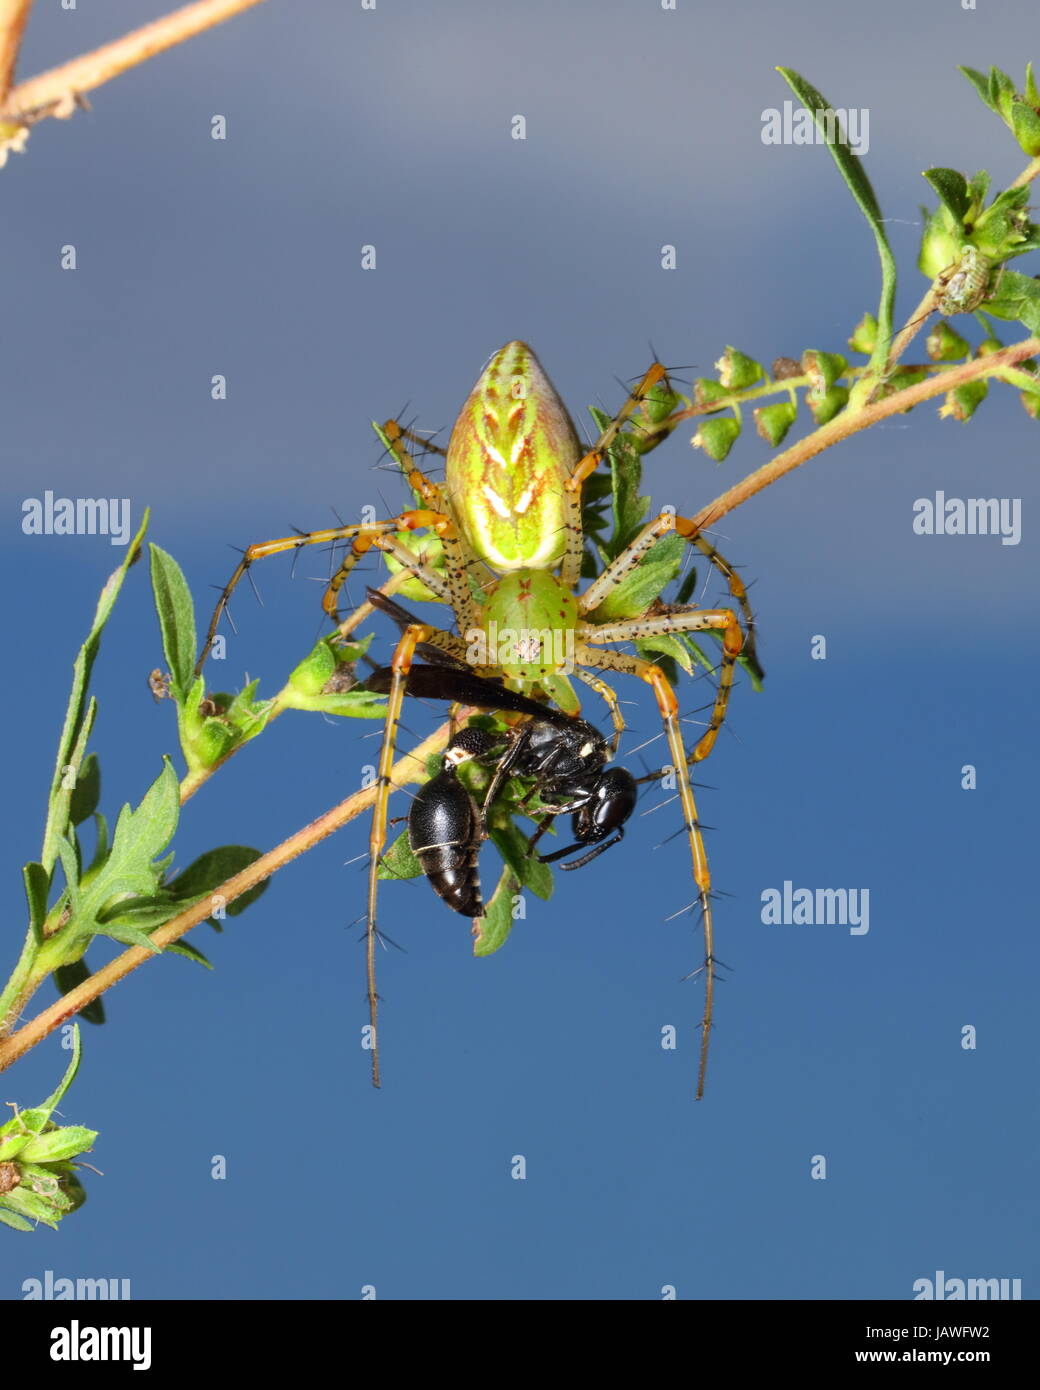 A green lynx spider, Peucetia viridans, preying on a wasp. - Stock Image